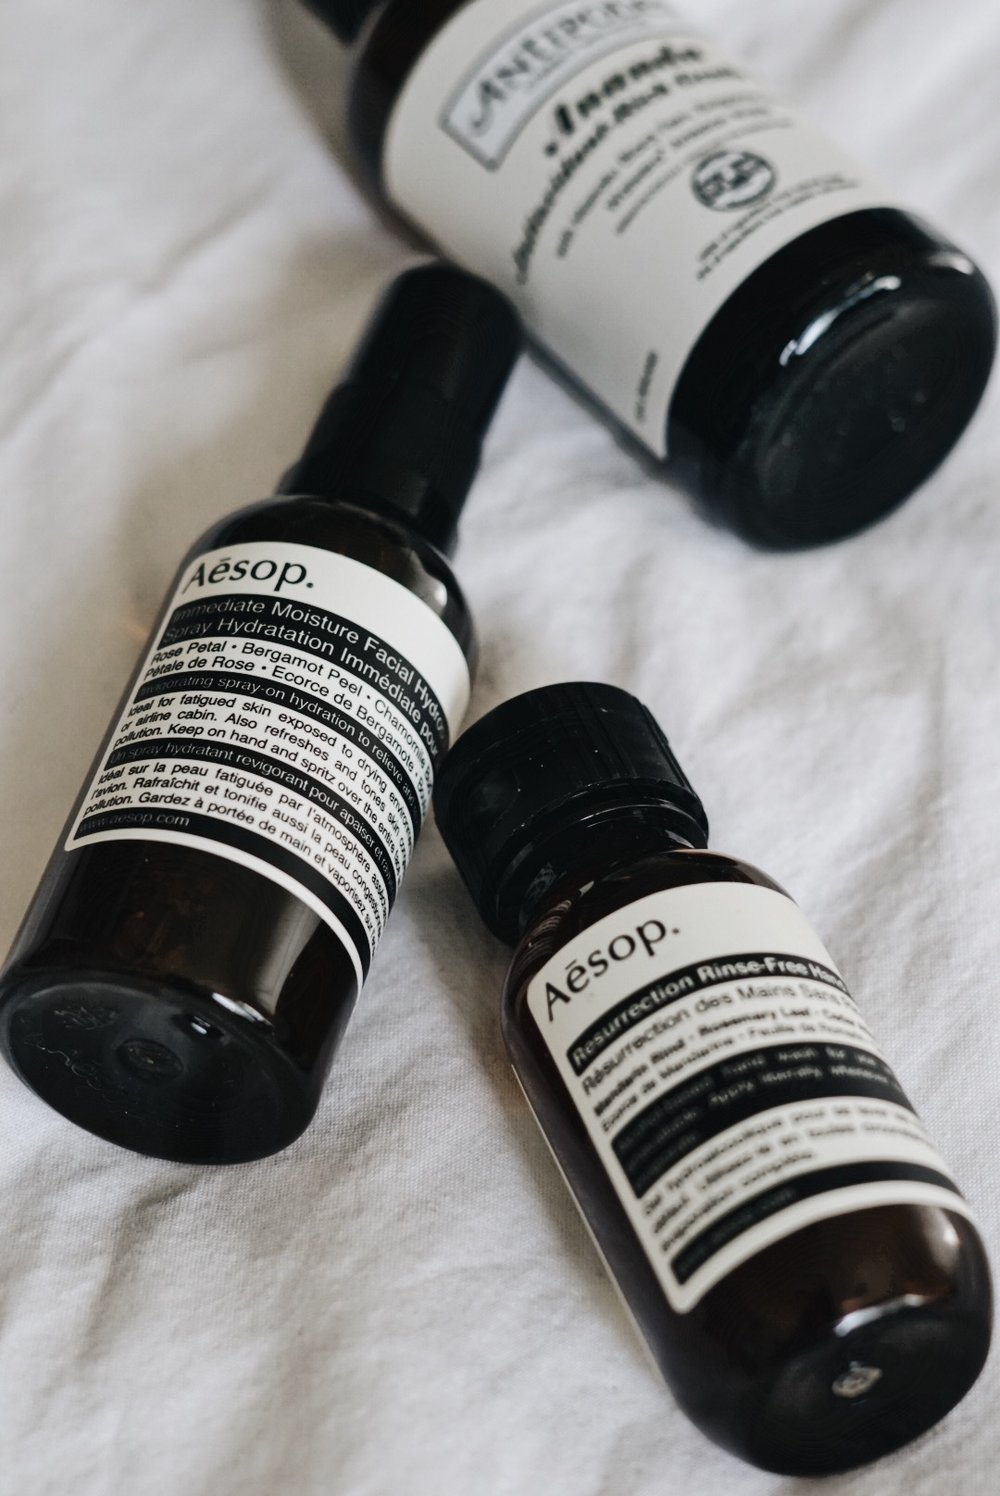 australian-beauty-aesop-antipodes-neutral-skincare-minimalistic